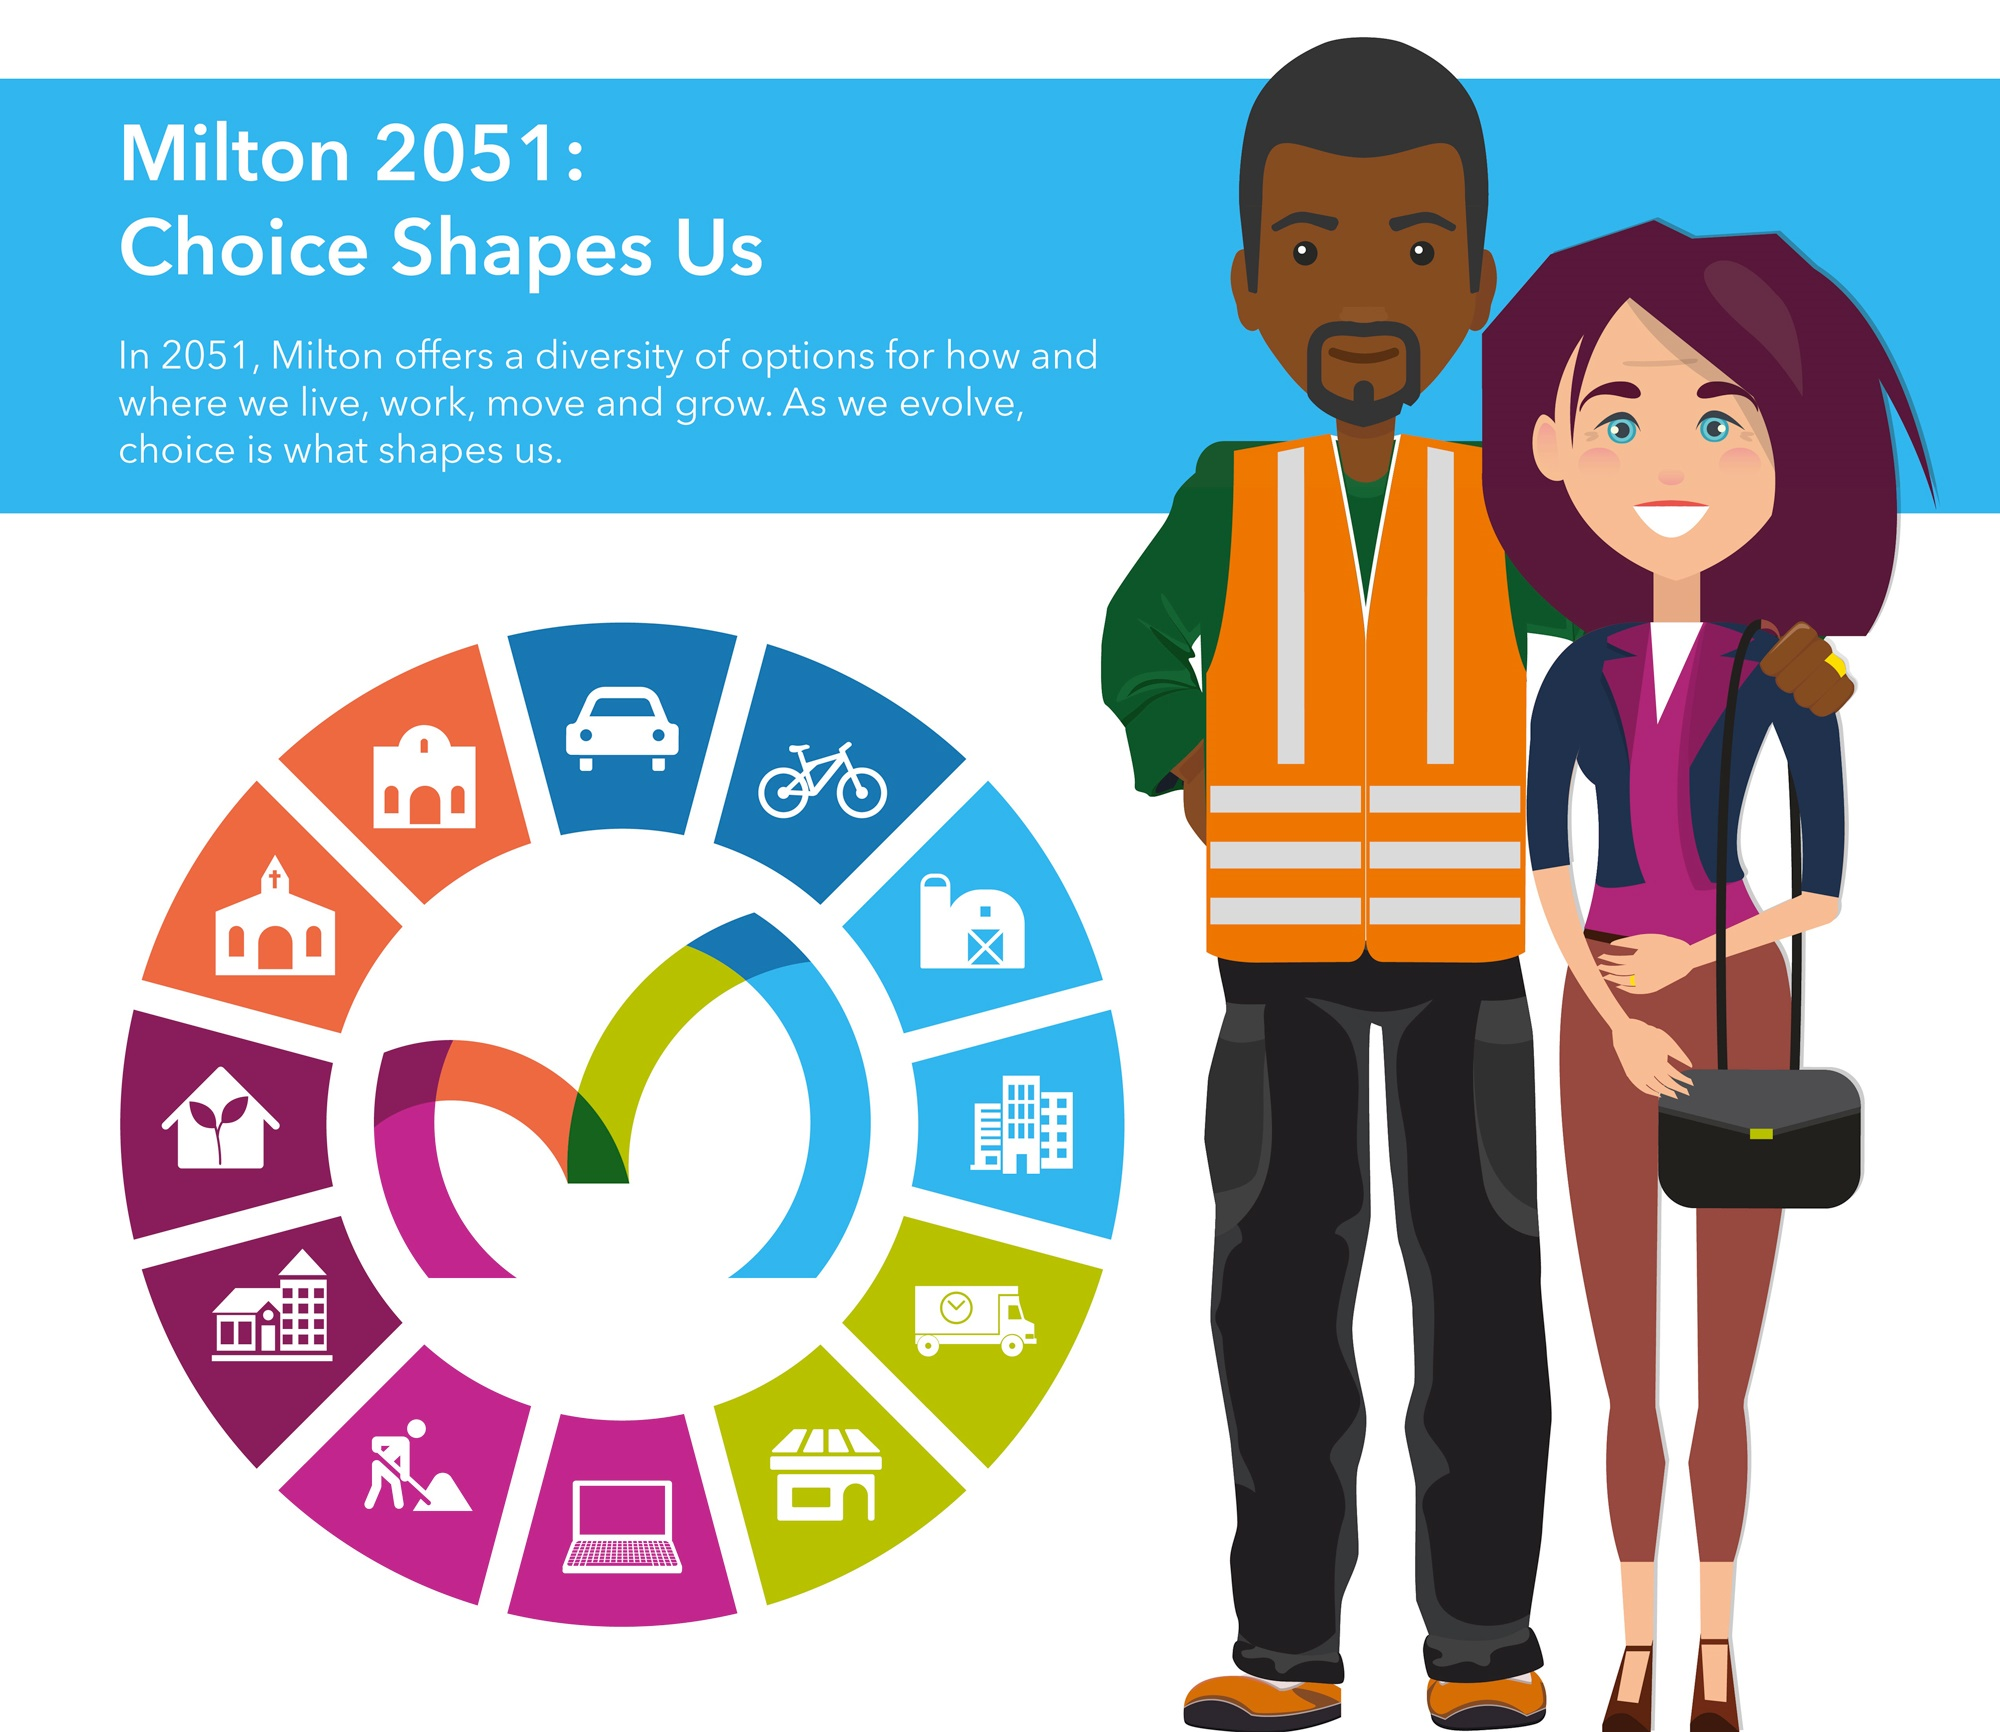 Graphic to represent Choice Shapes Us, the proposed vision statement